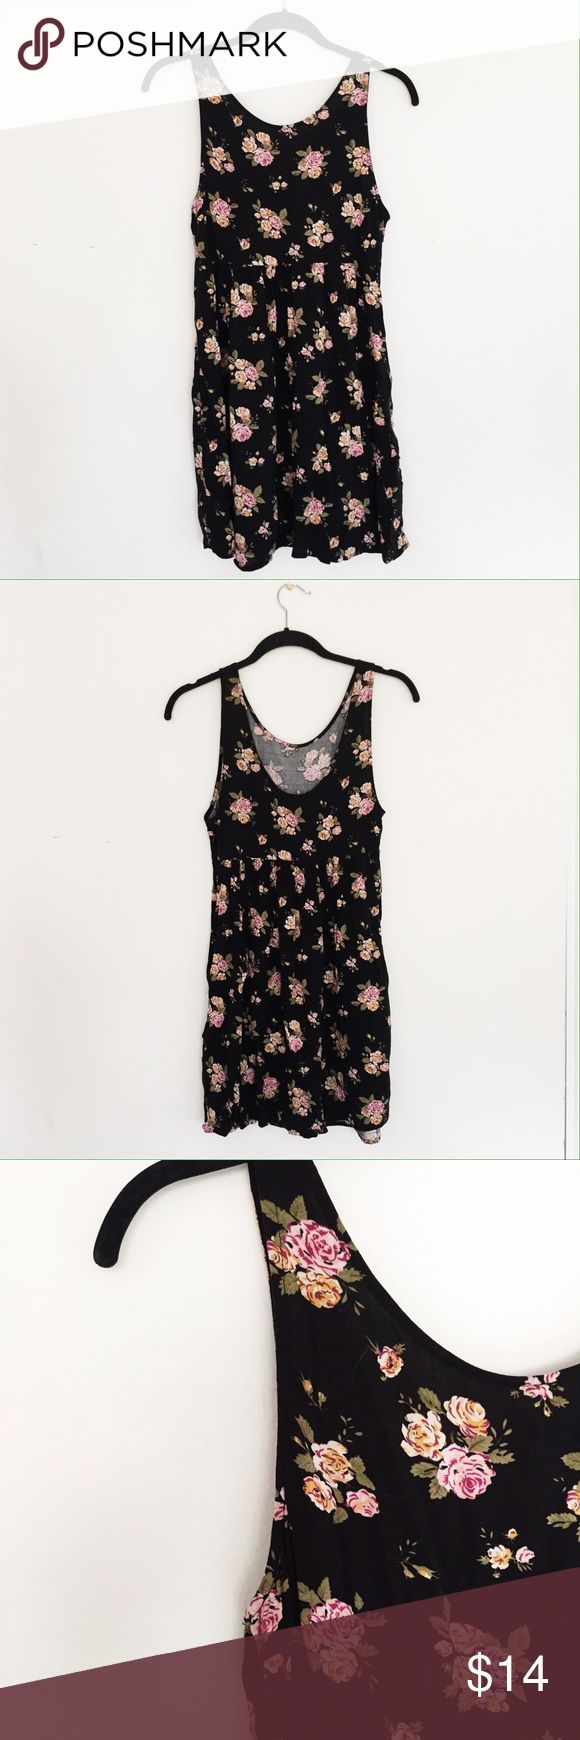 NWOT Floral Mini Dress - Black Black floral mini dress from Forever 21. Size small. Never been worn. Forever 21 Dresses Mini